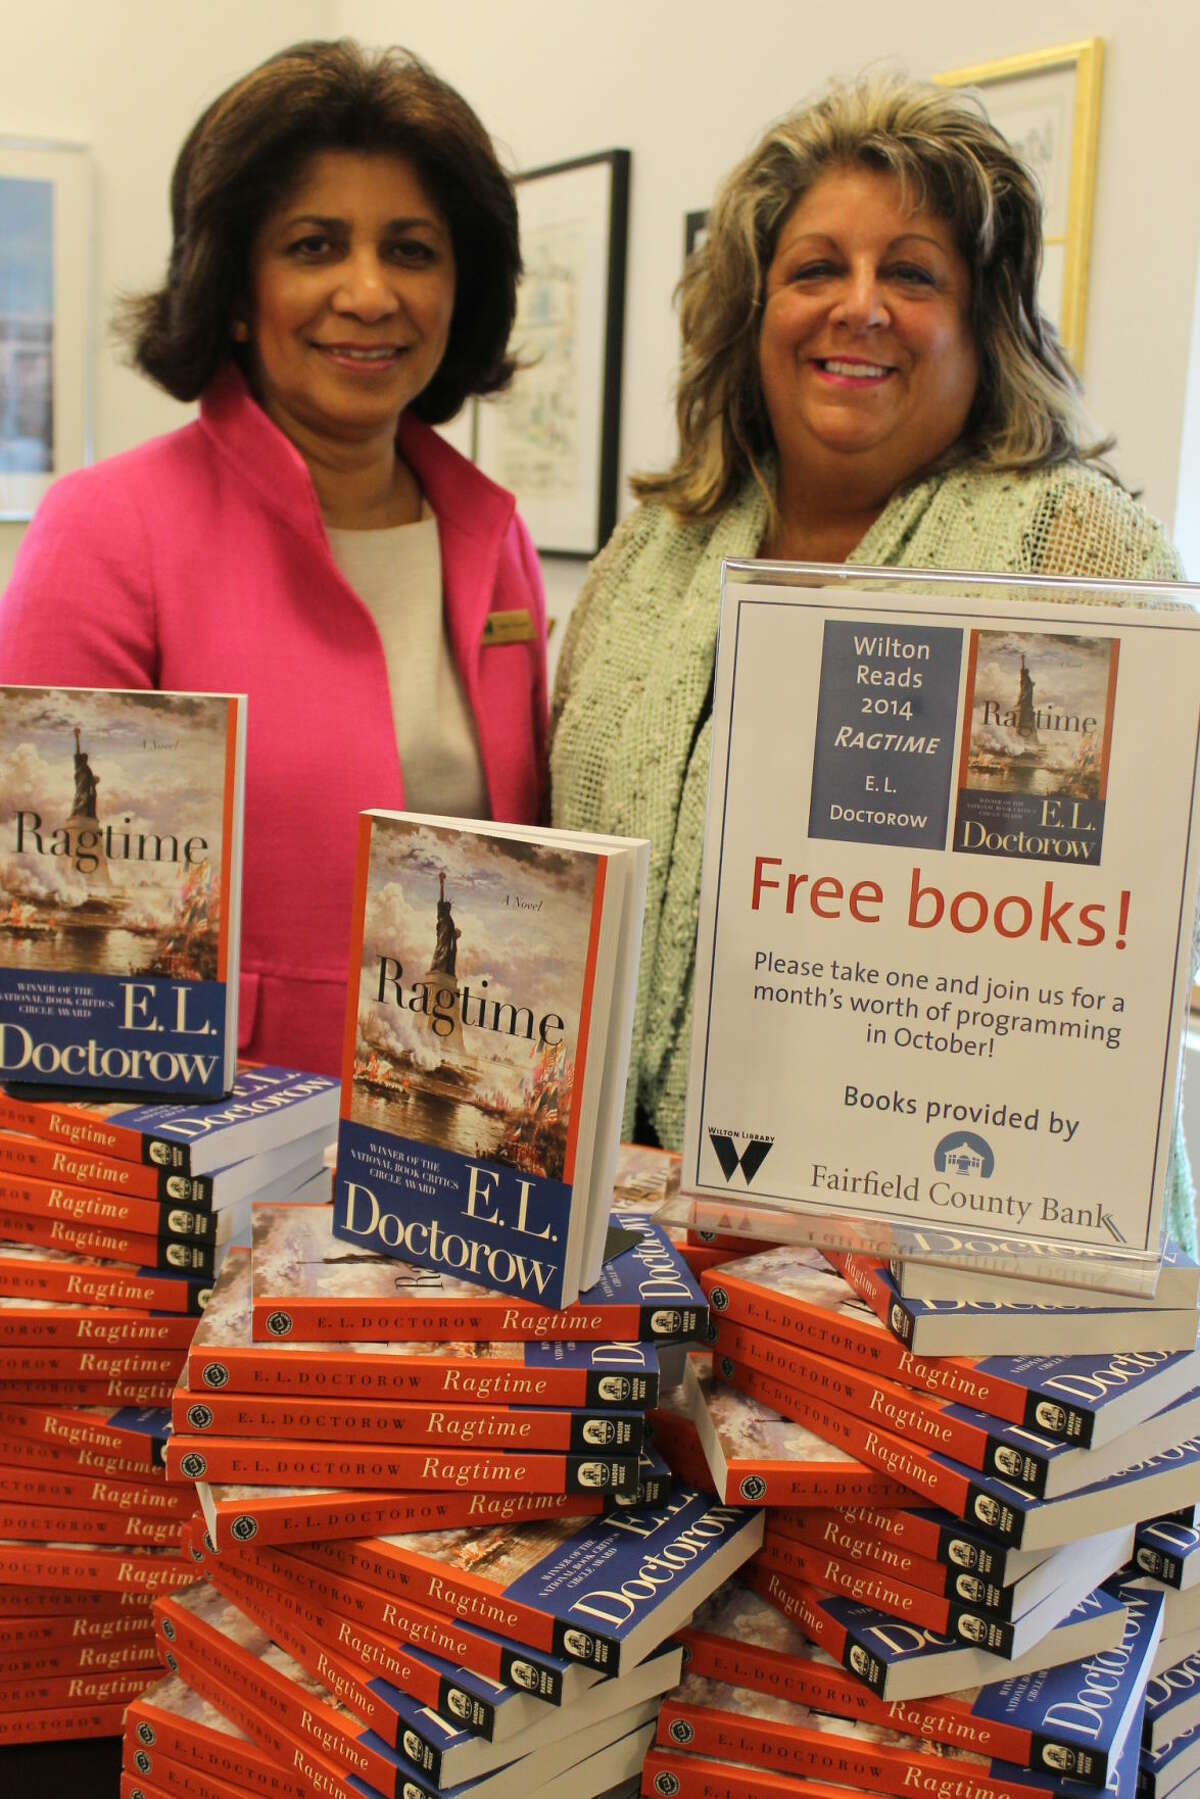 """Elaine Tai-Lauria, executive director of Wilton Library, and Carol Johnson, vice president of Fairfield County Bank, display free copies of the novel """"Ragtime,"""" which will be given out on Saturday, Sept. 27 at the library in advance of the month-long Wilton Reads program in October. For more information, visit www.wiltonlibrary.org or call (203) 7672-3950, ext. 213."""